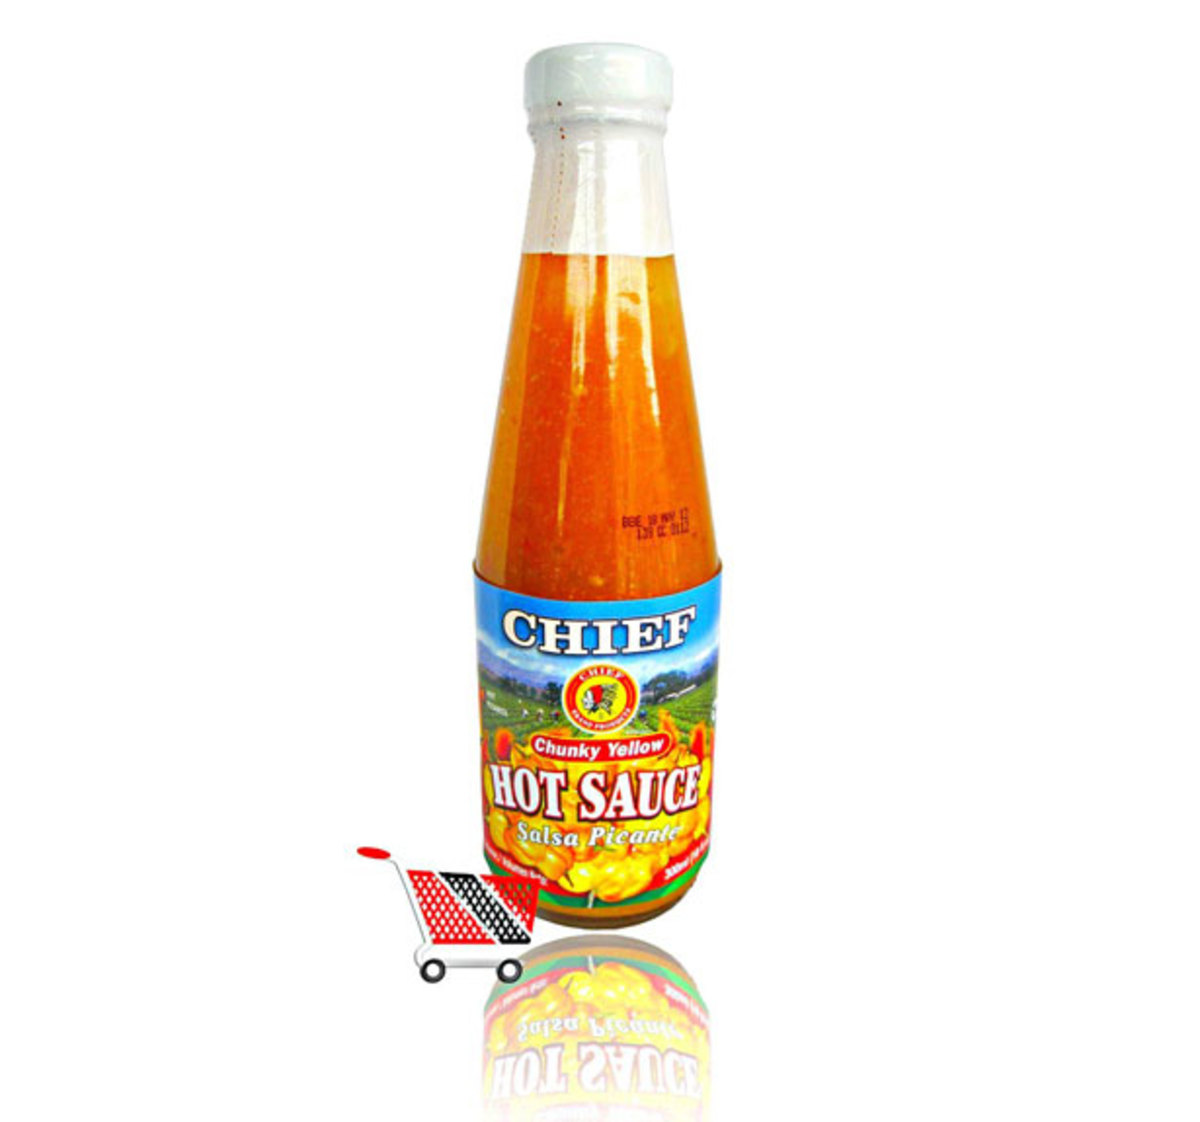 Chief-Scotch-Bonnet-Sauce